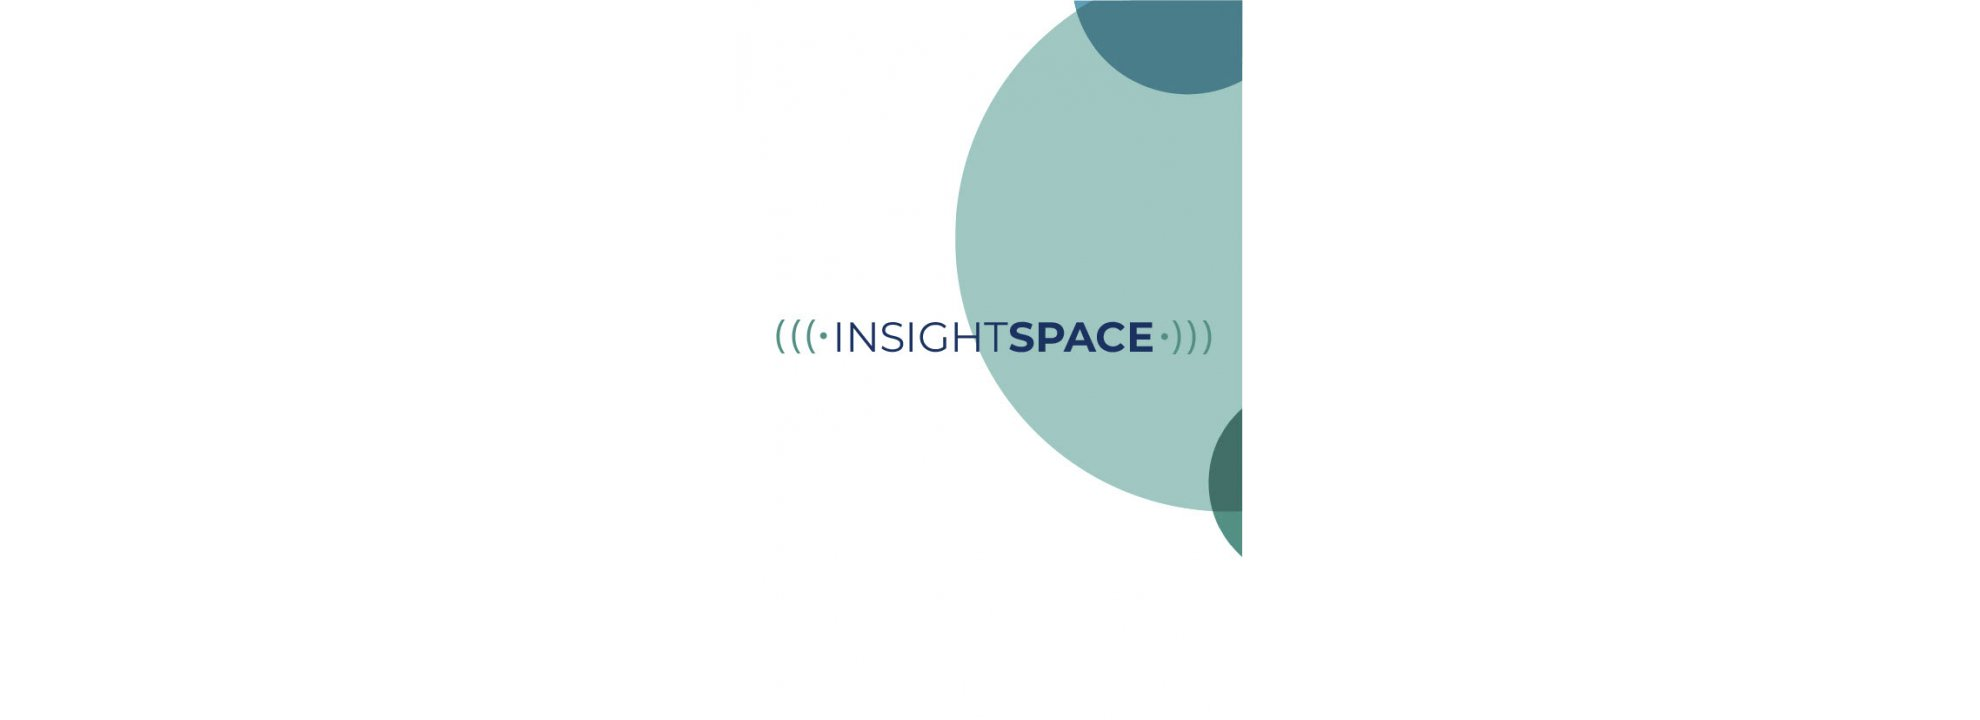 Insight Space - Trying to change behaviour through working with less active communities Banner